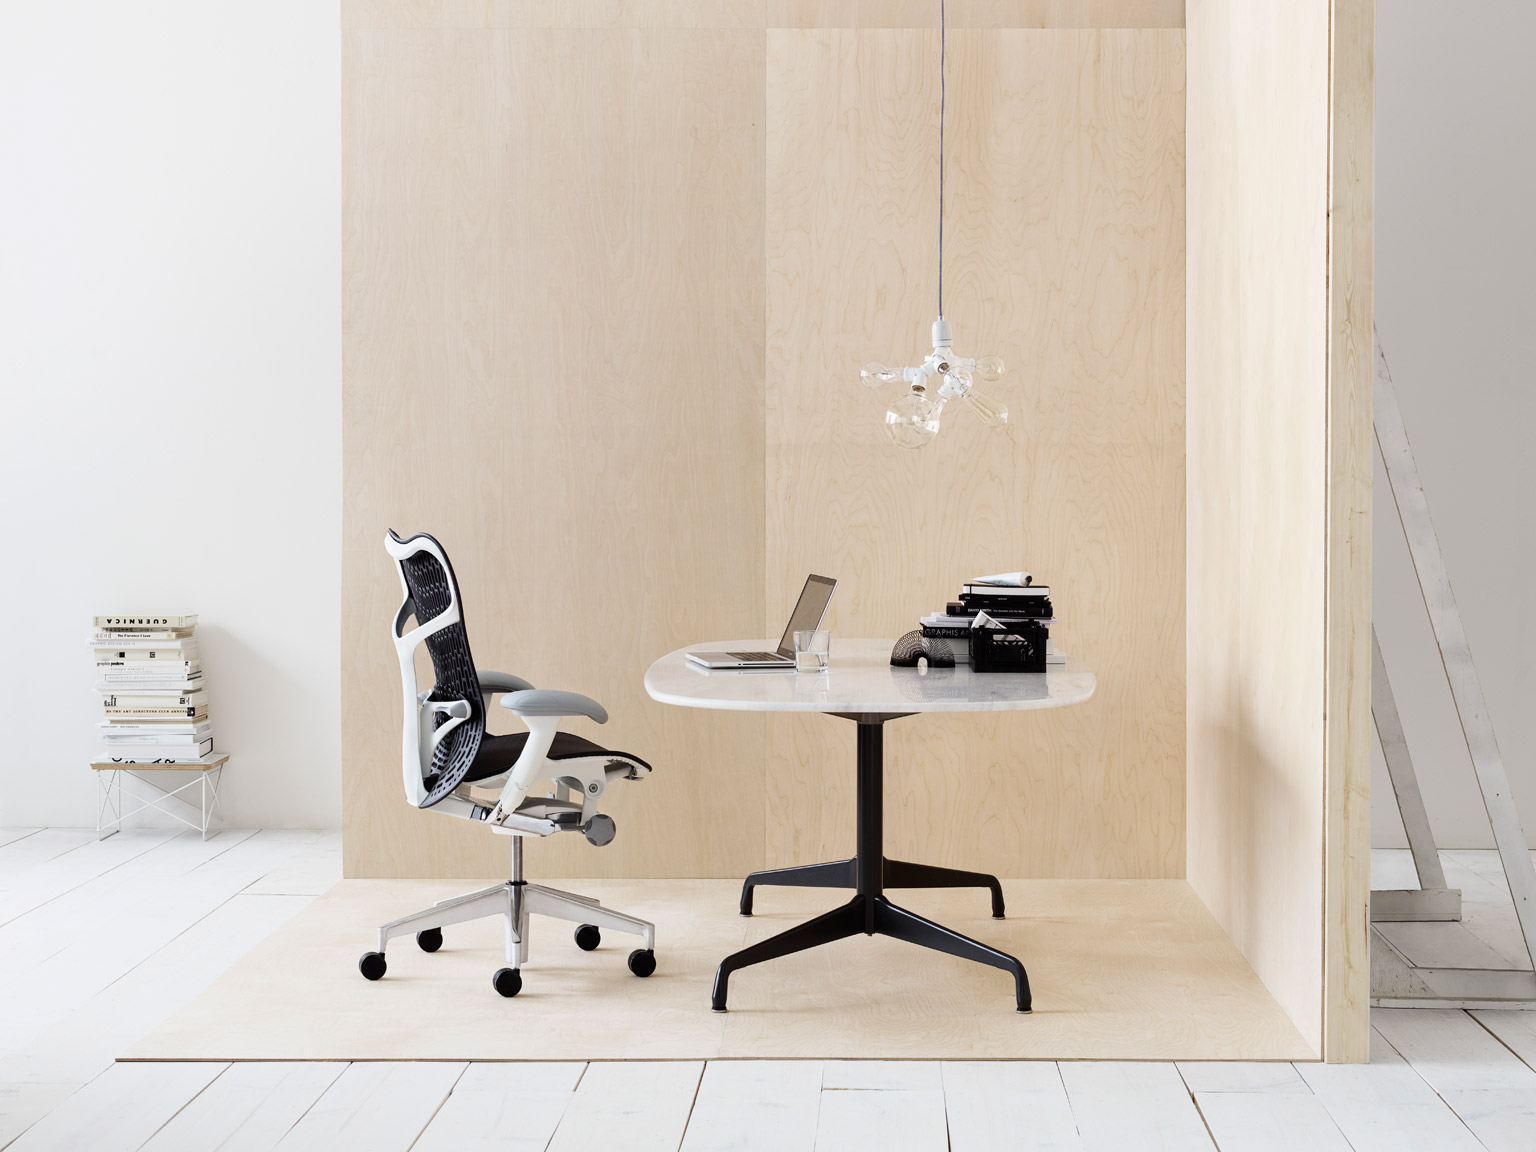 PB_hermanmiller_mirra2